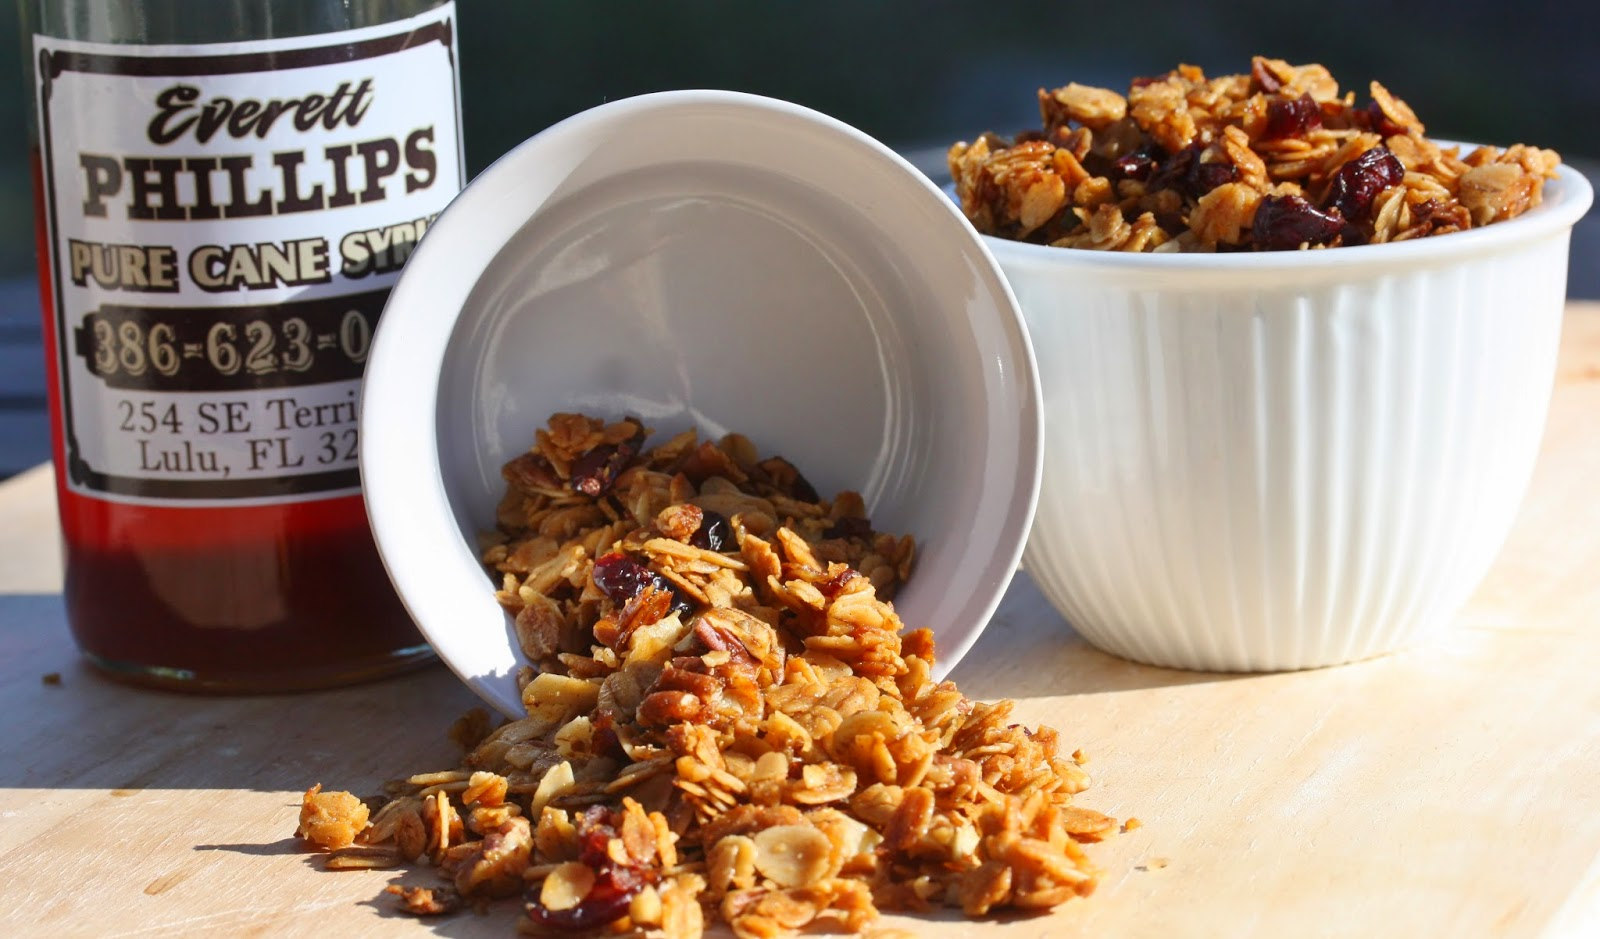 Southern Style Granola by Best of Long Island and Central Florida